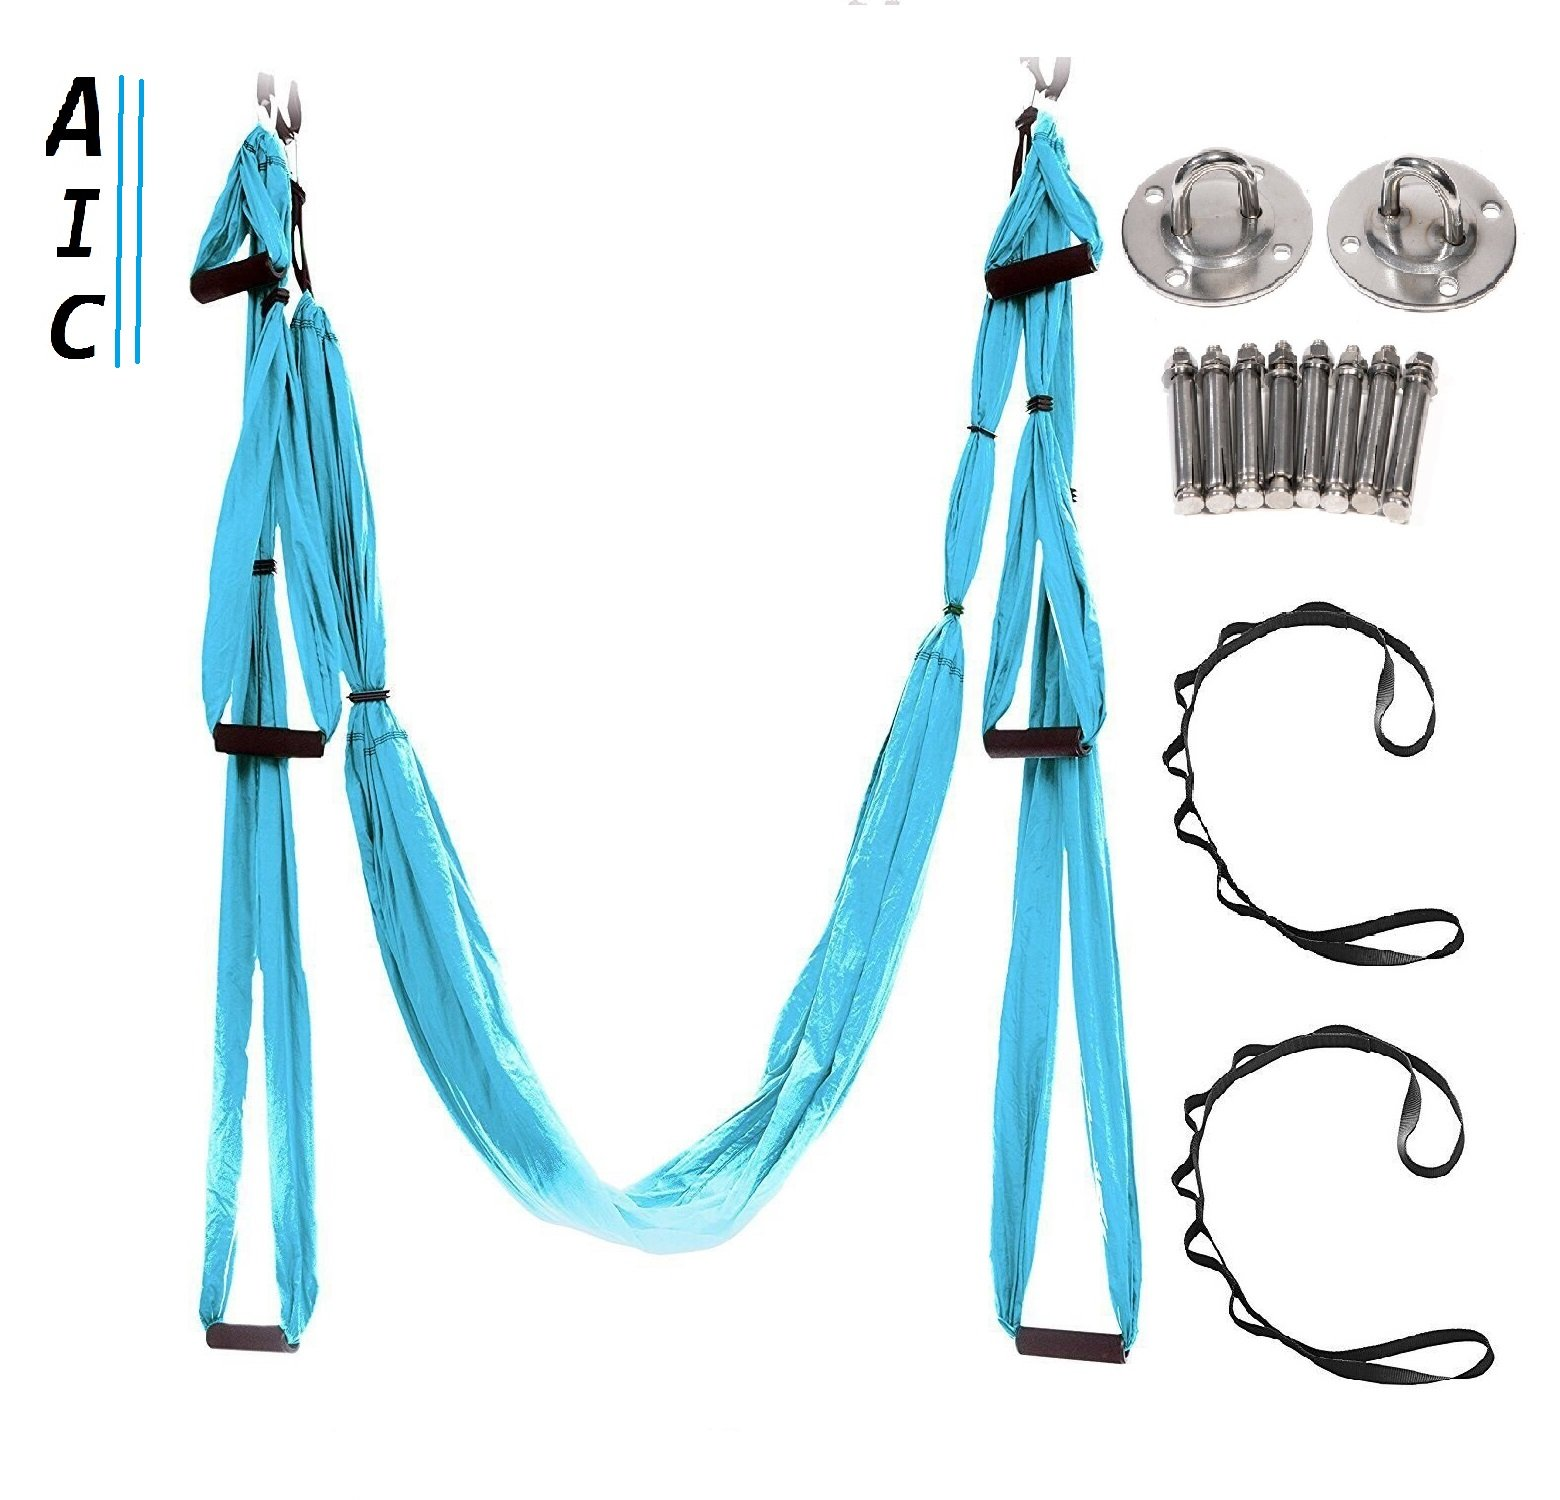 AIC Yoga Swing - Ultra Strong Antigravity Yoga Hammock/Trapeze/Sling for Antigravity Yoga with Adjustable Handles and 2 Extension Straps and Installation Hardware Include Carrying Bag (biue)